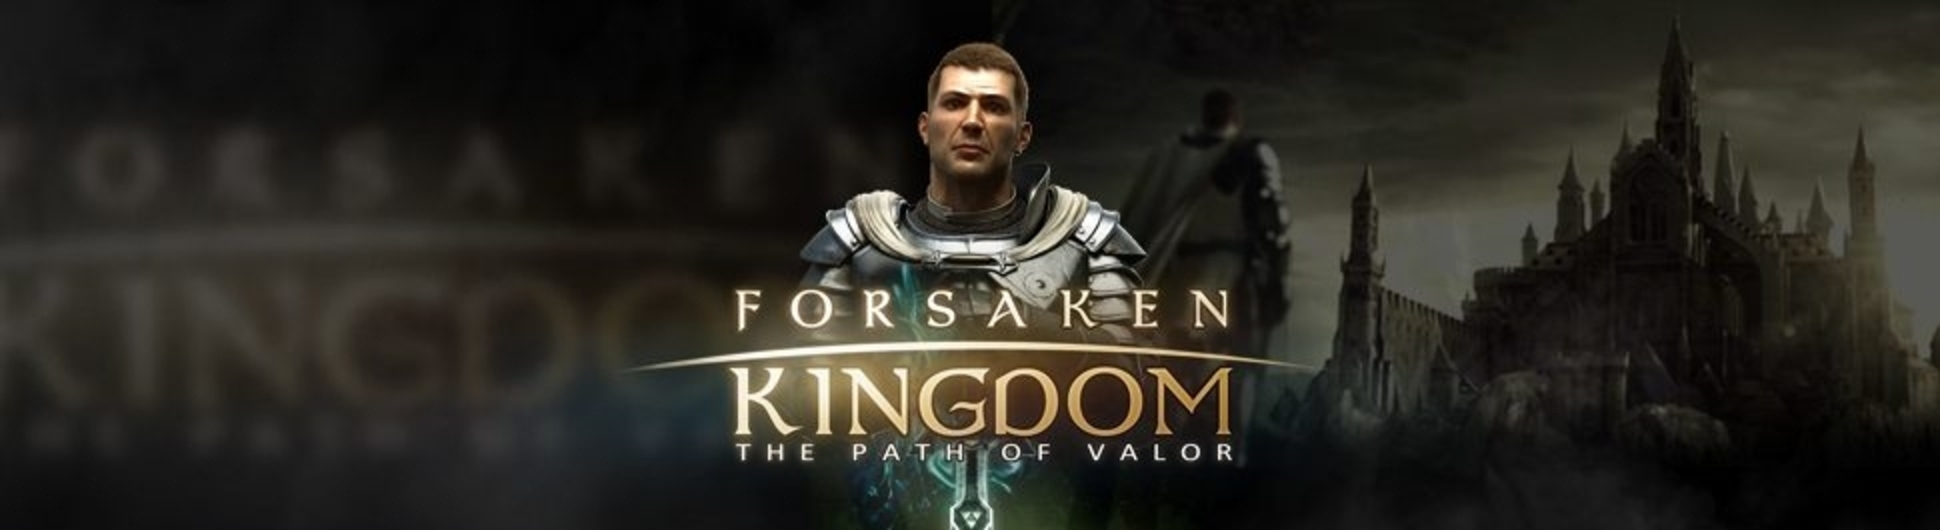 The Forsaken Kingdom Online Slot Demo Game by Rabcat